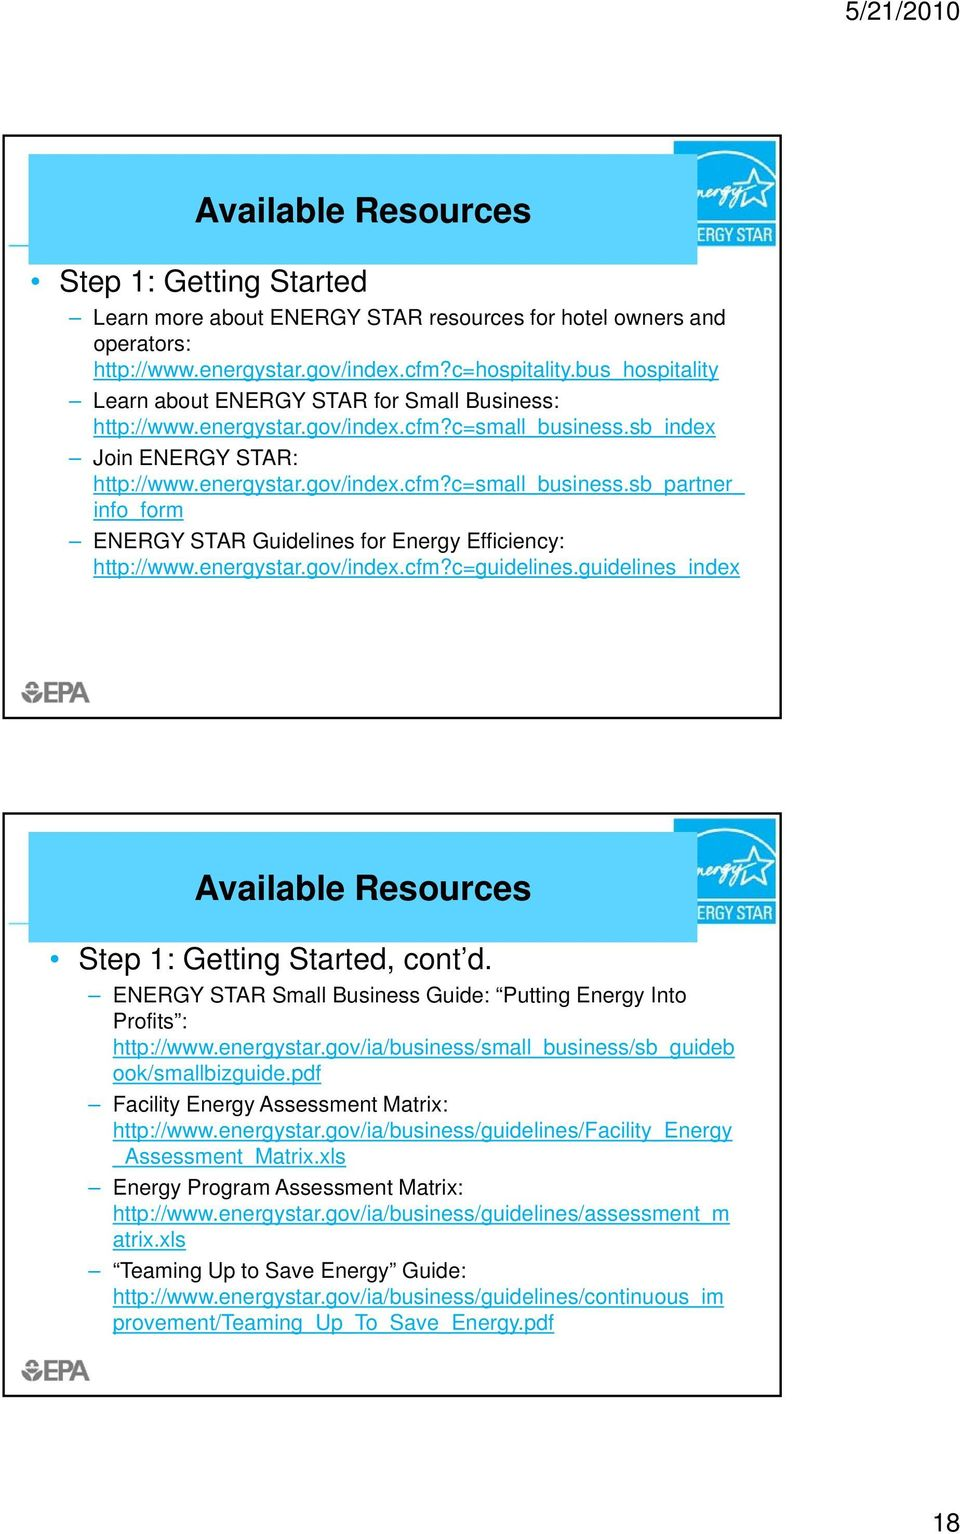 energystar.gov/index.cfm?c=guidelines.guidelines_index Available Resources Step 1: Getting Started, cont d. ENERGY STAR Small Business Guide: Putting Energy Into Profits : http://www.energystar.gov/ia/business/small_business/sb_guideb ook/smallbizguide.